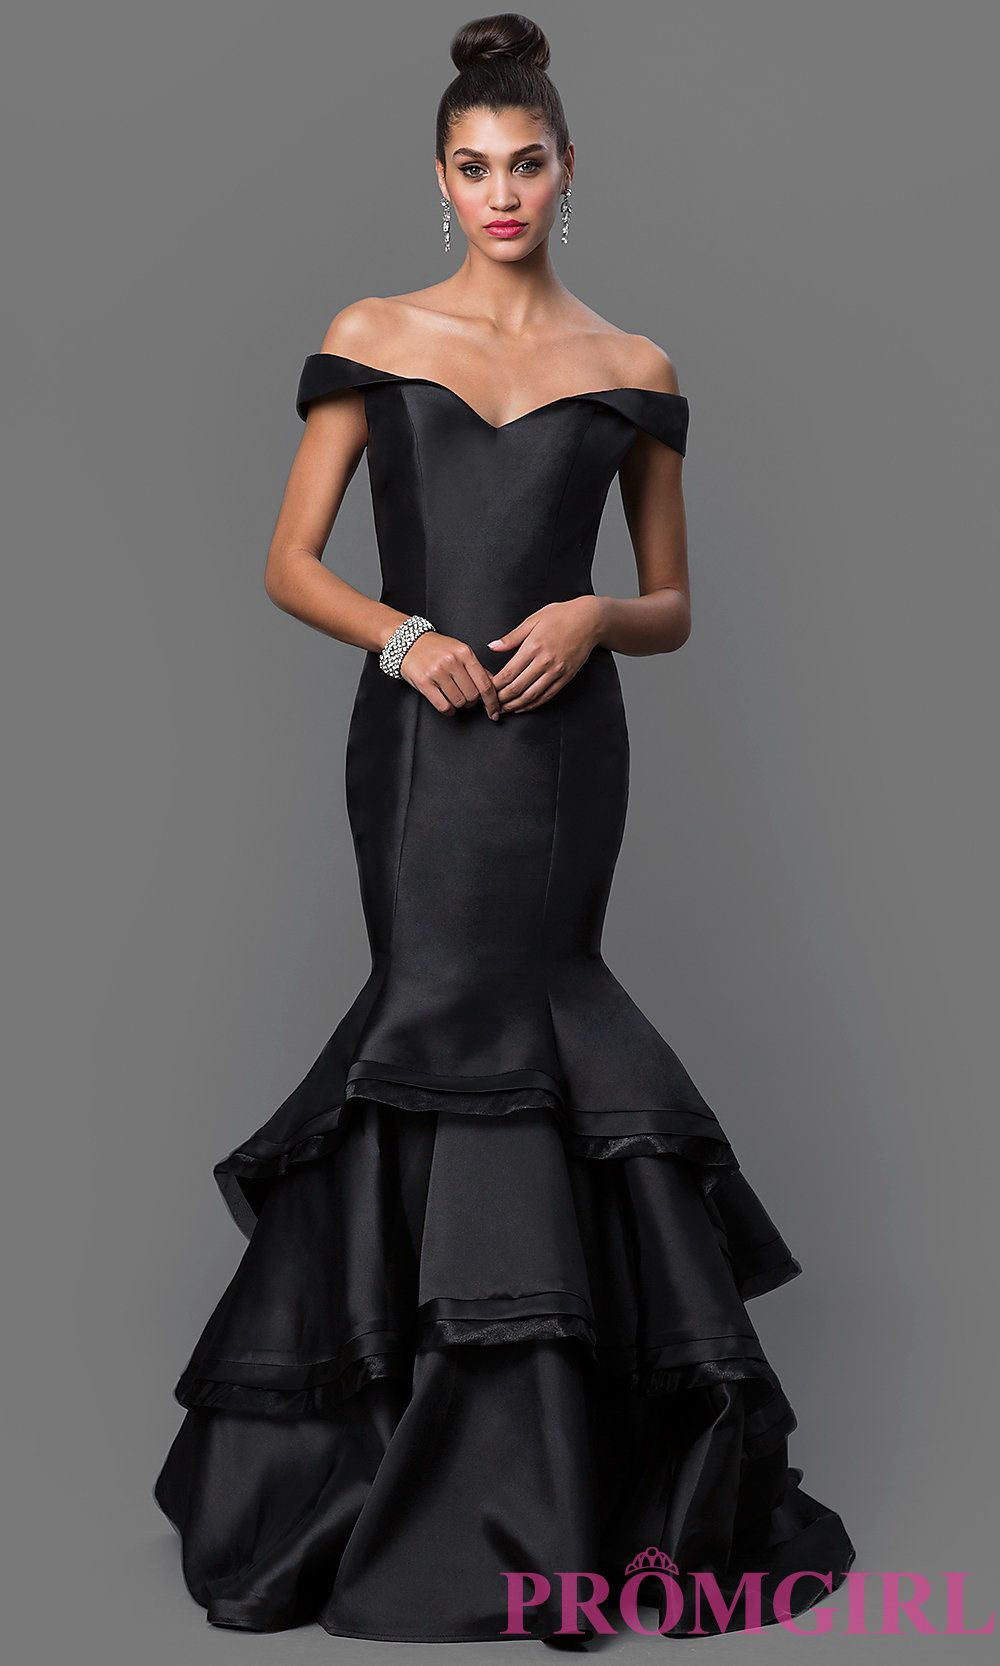 2019 year style- Black jovani mermaid prom dress